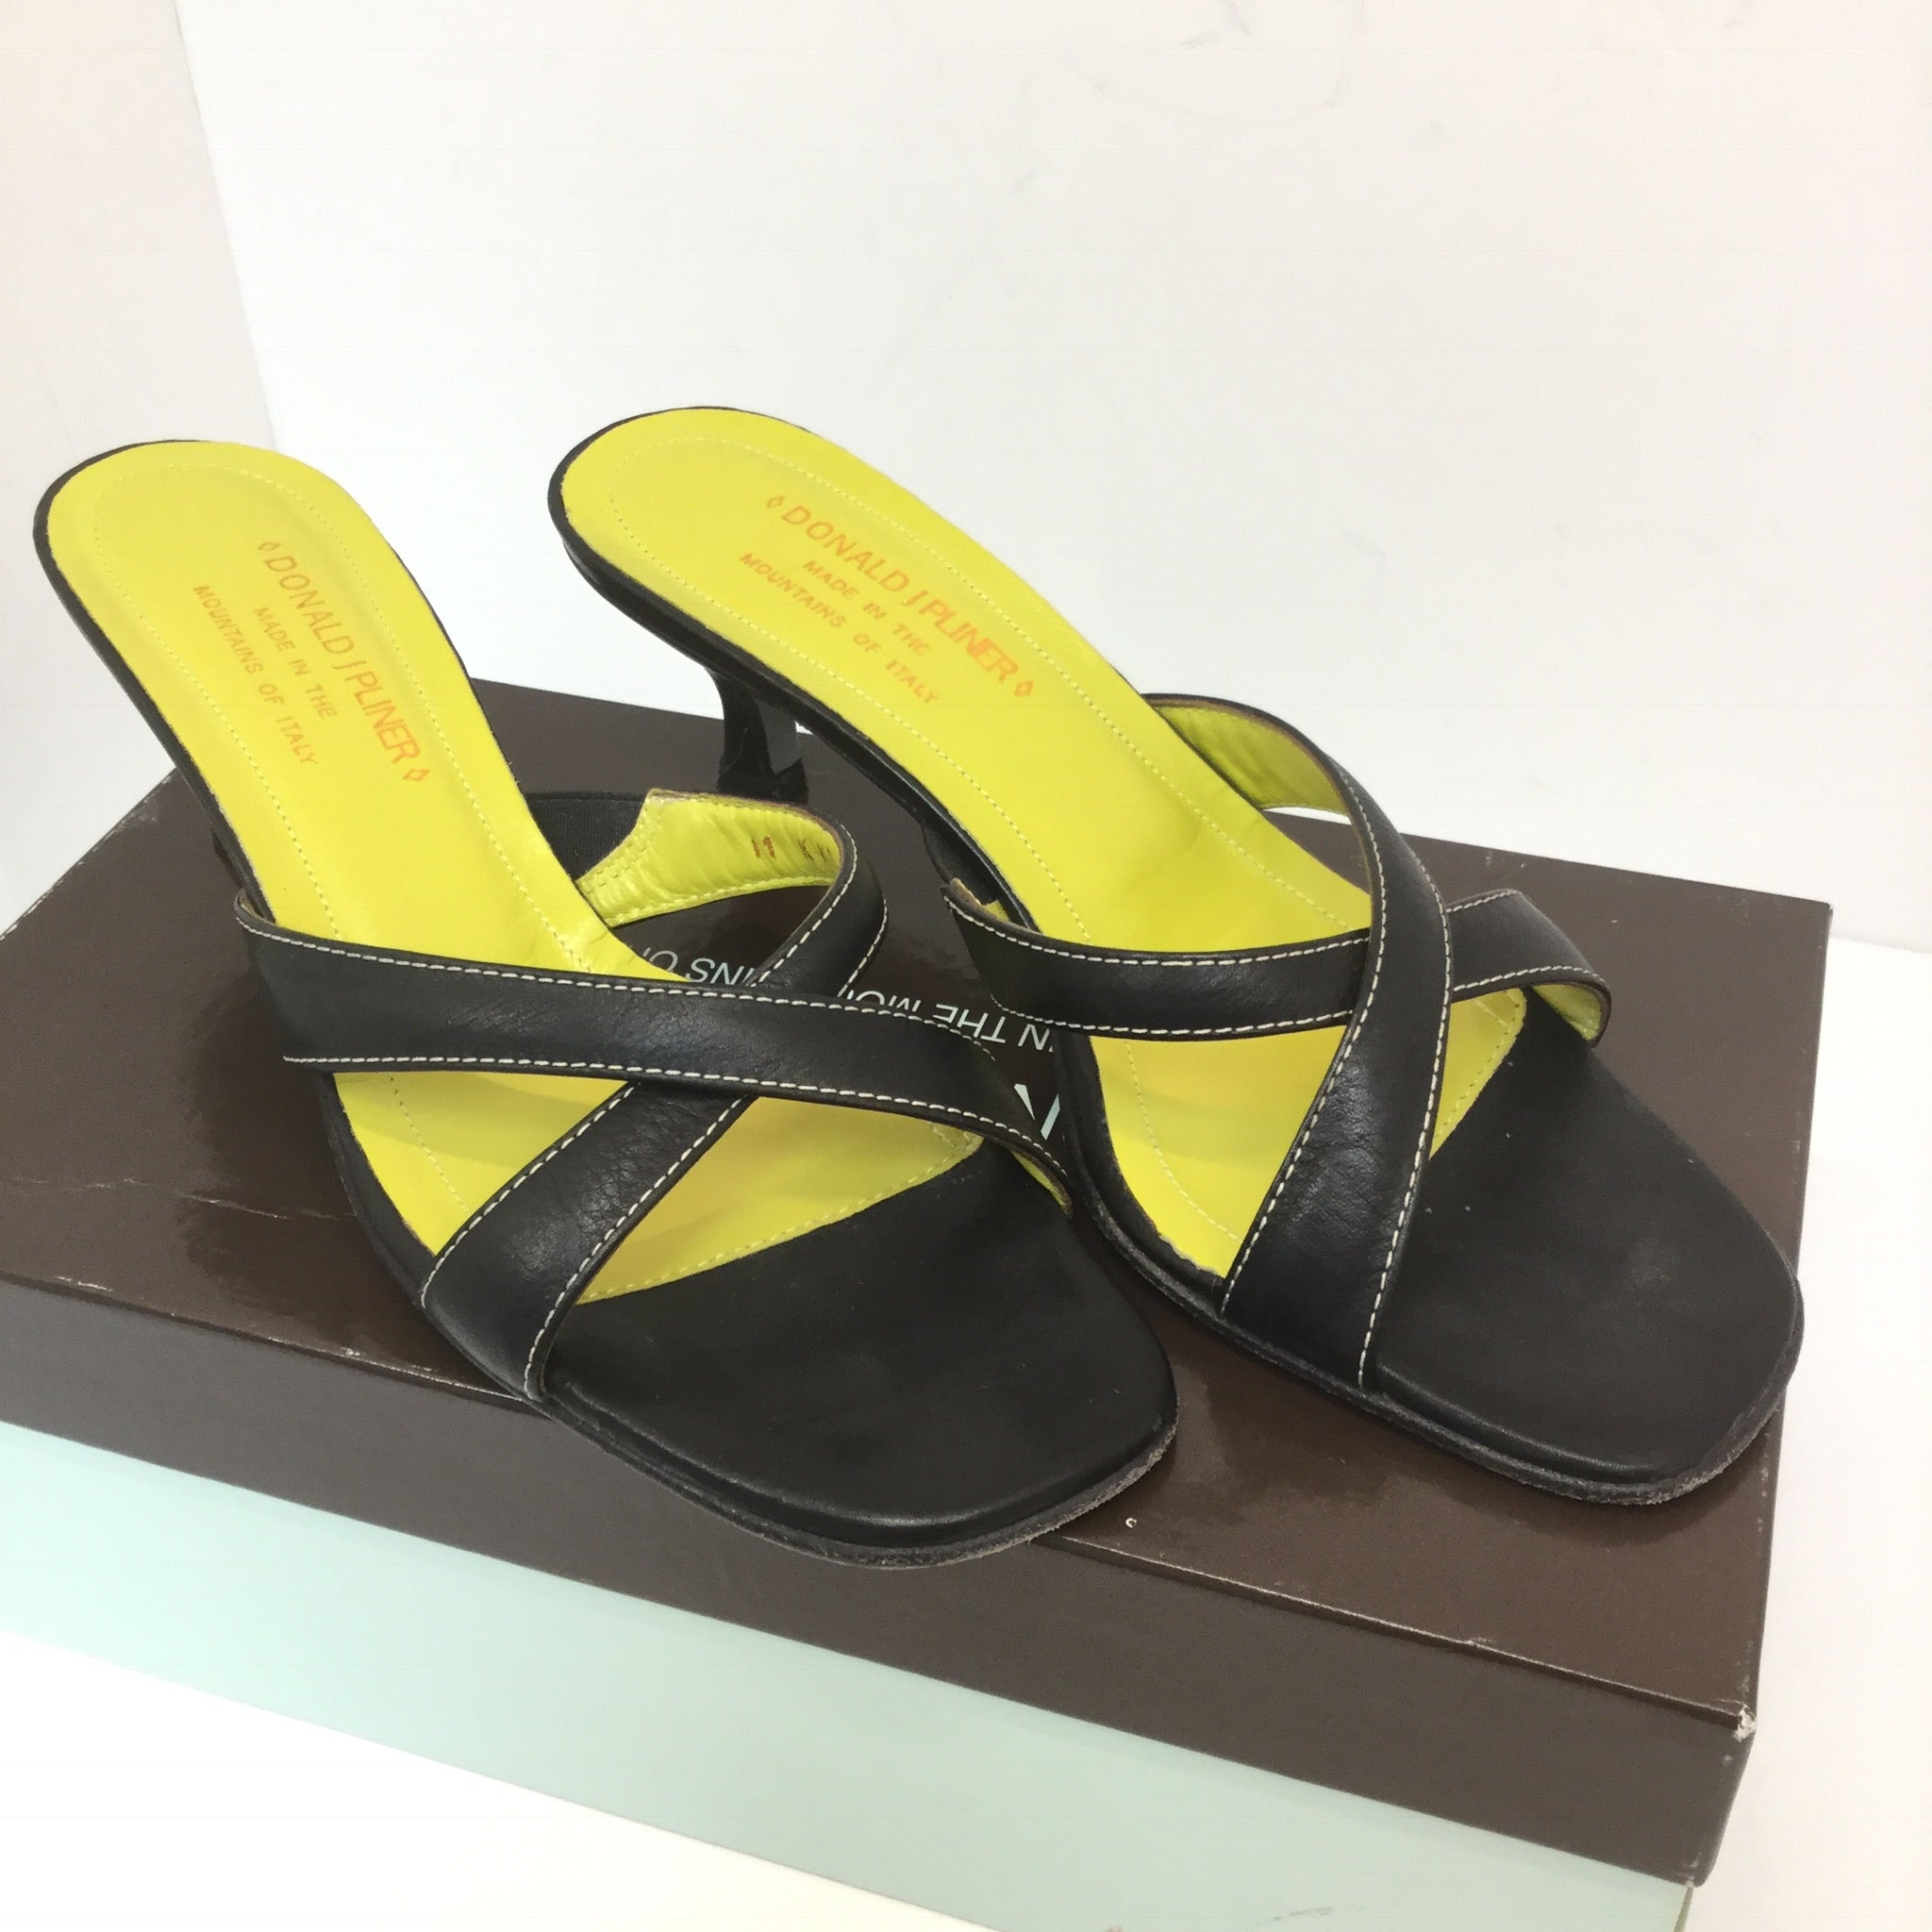 Donald J. Pliner Nappa Leather Sandals - size 8